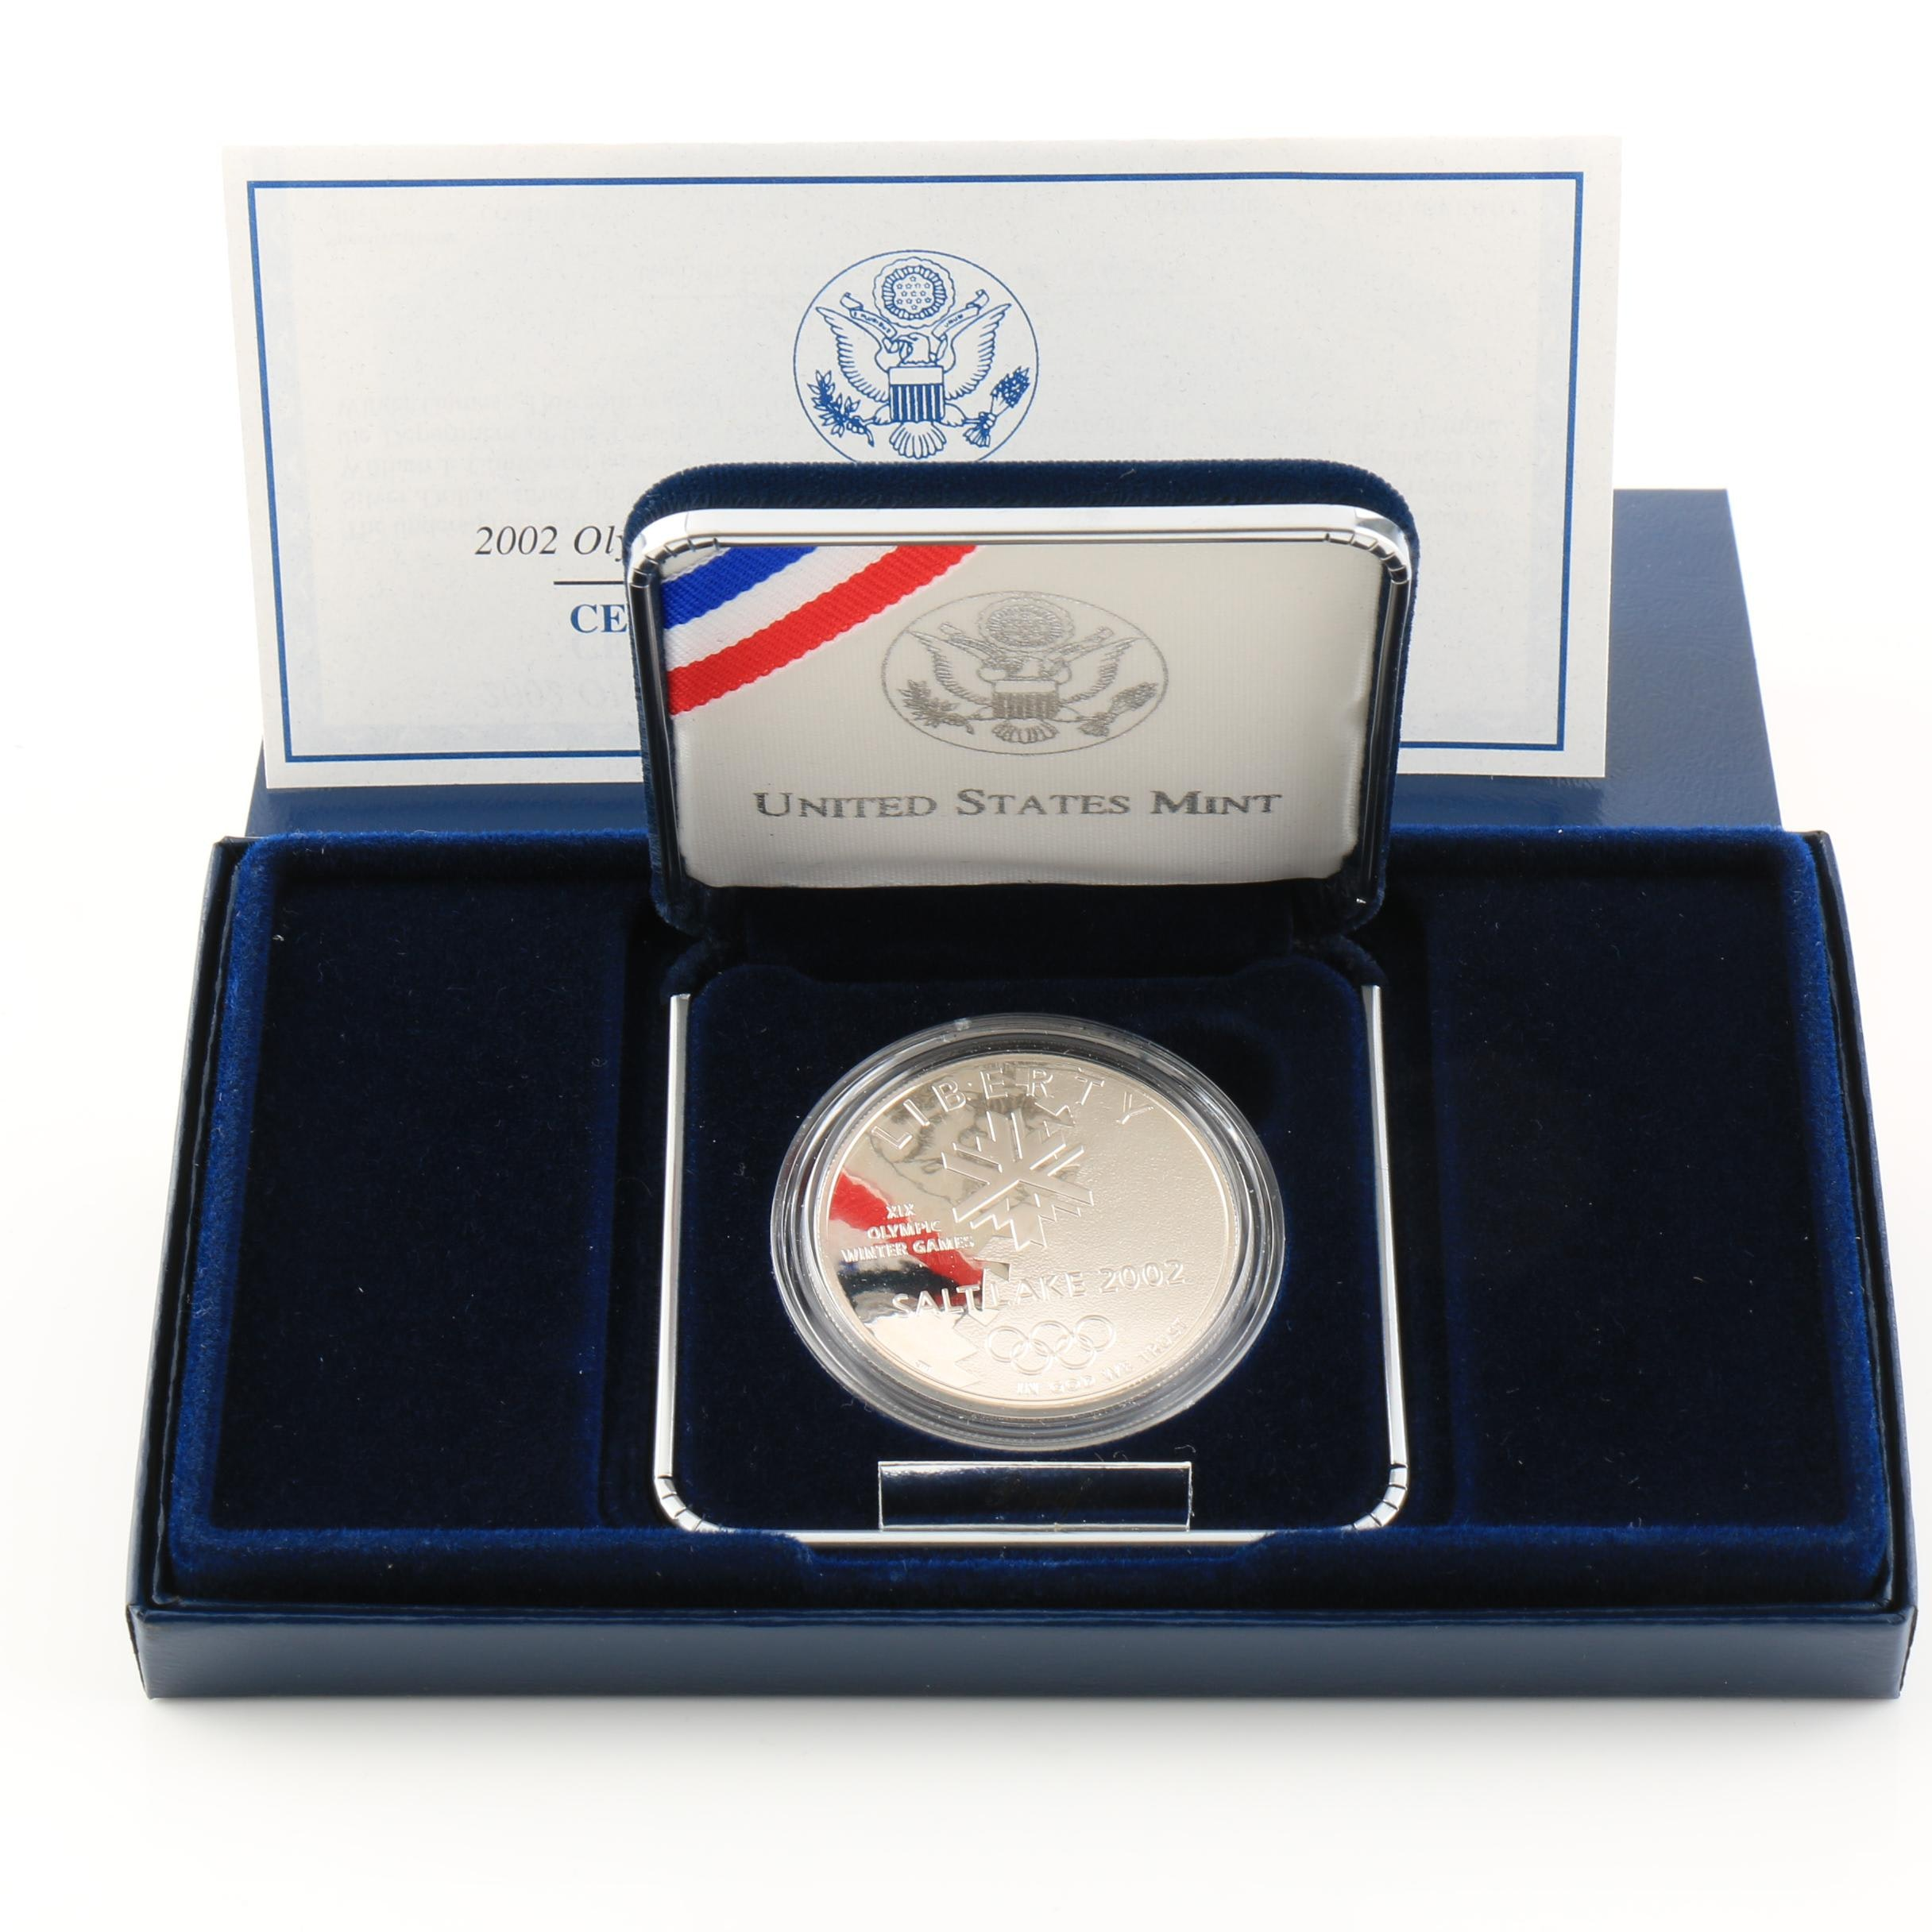 2002 Salt Lake Olympic Winter Games Commemorative Proof Silver Dollar